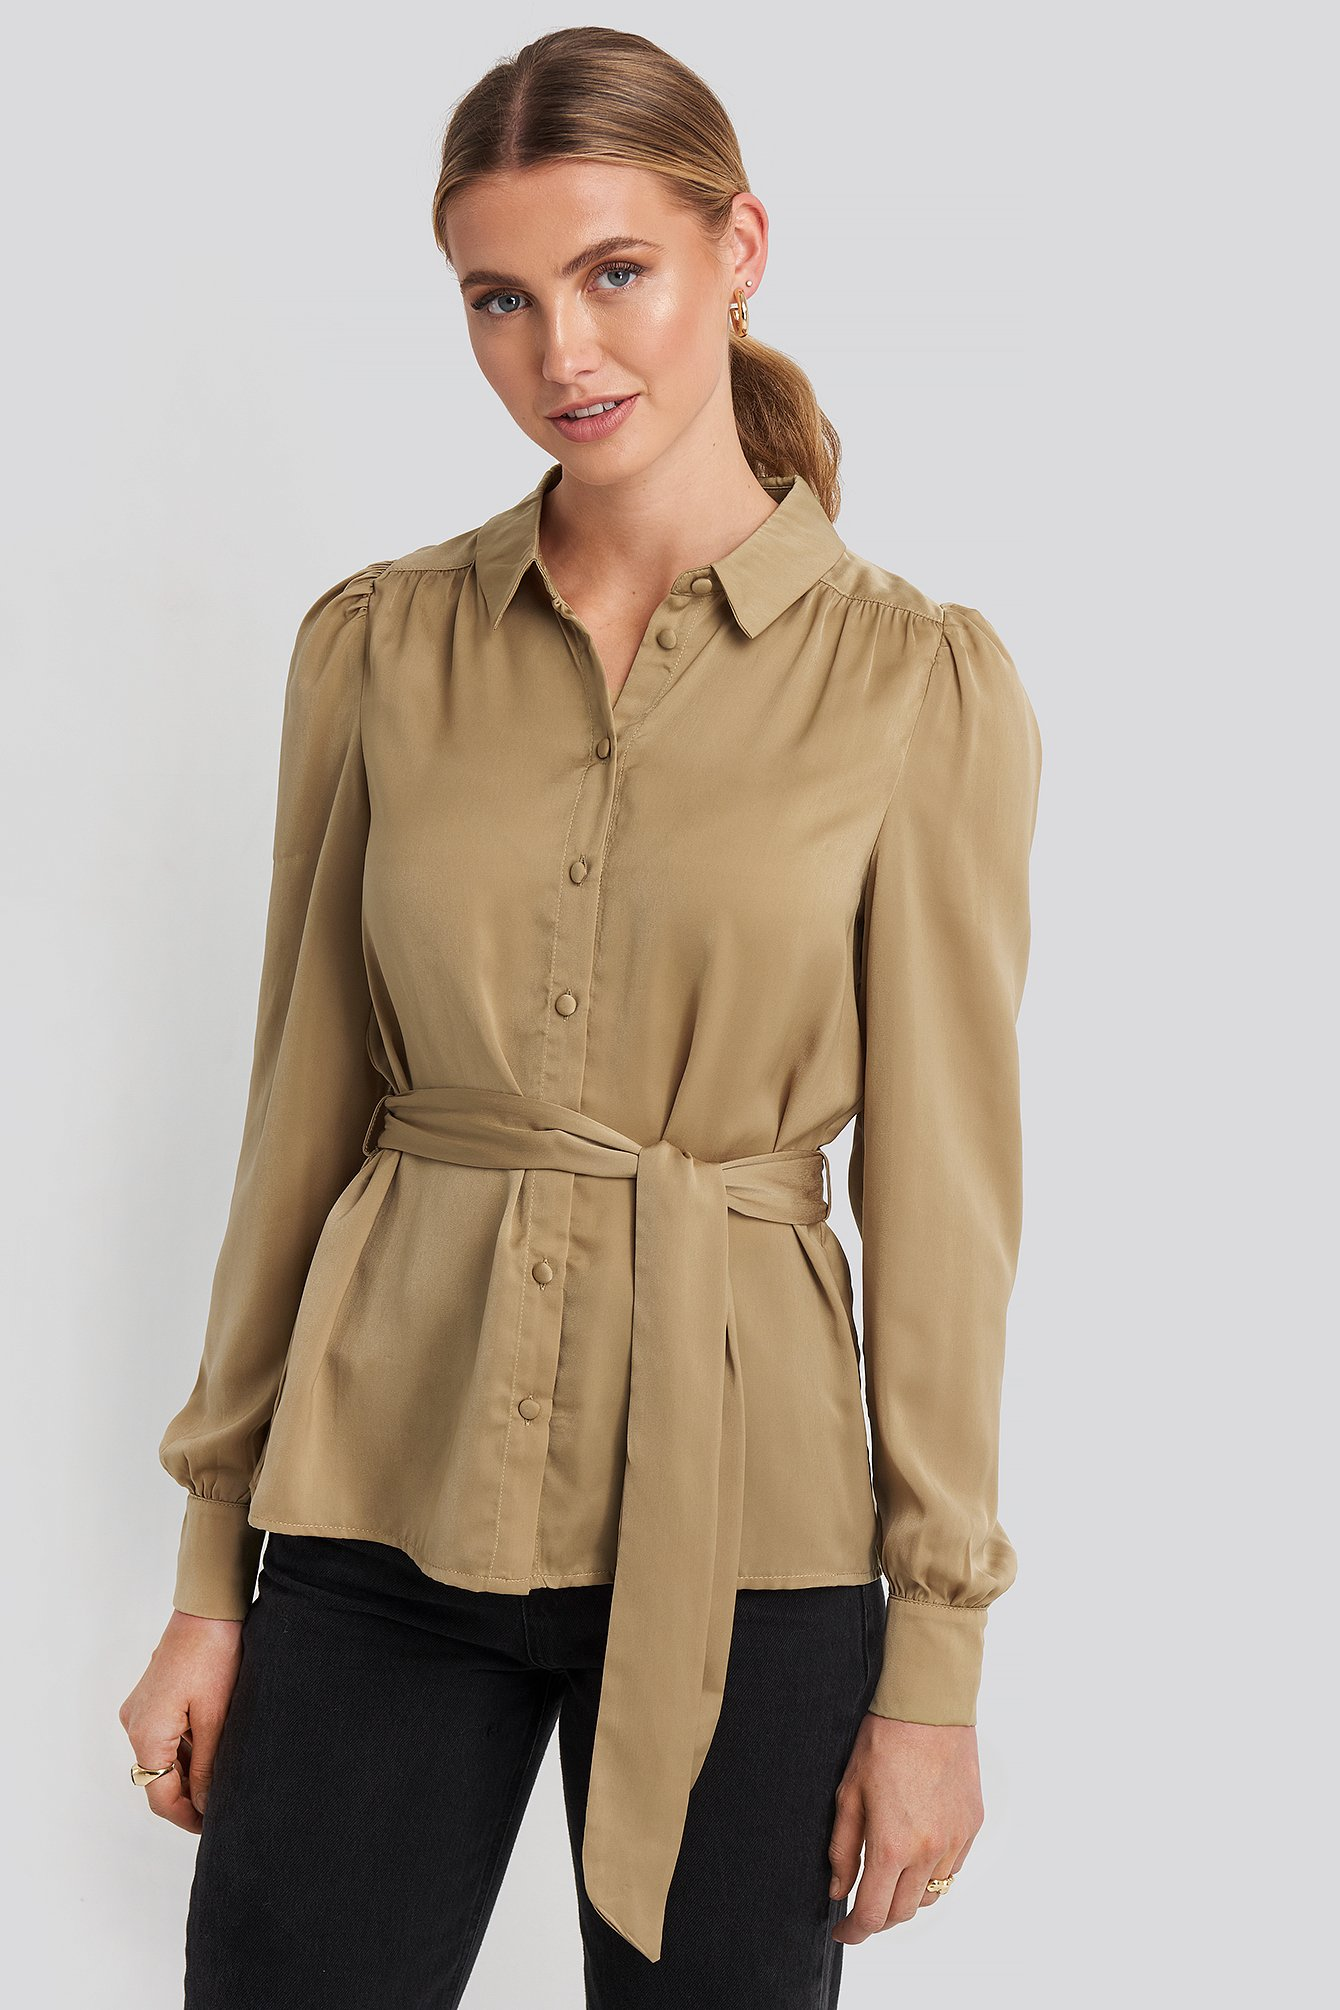 na-kd party -  Satin Waistband Blouse - Beige,Gold